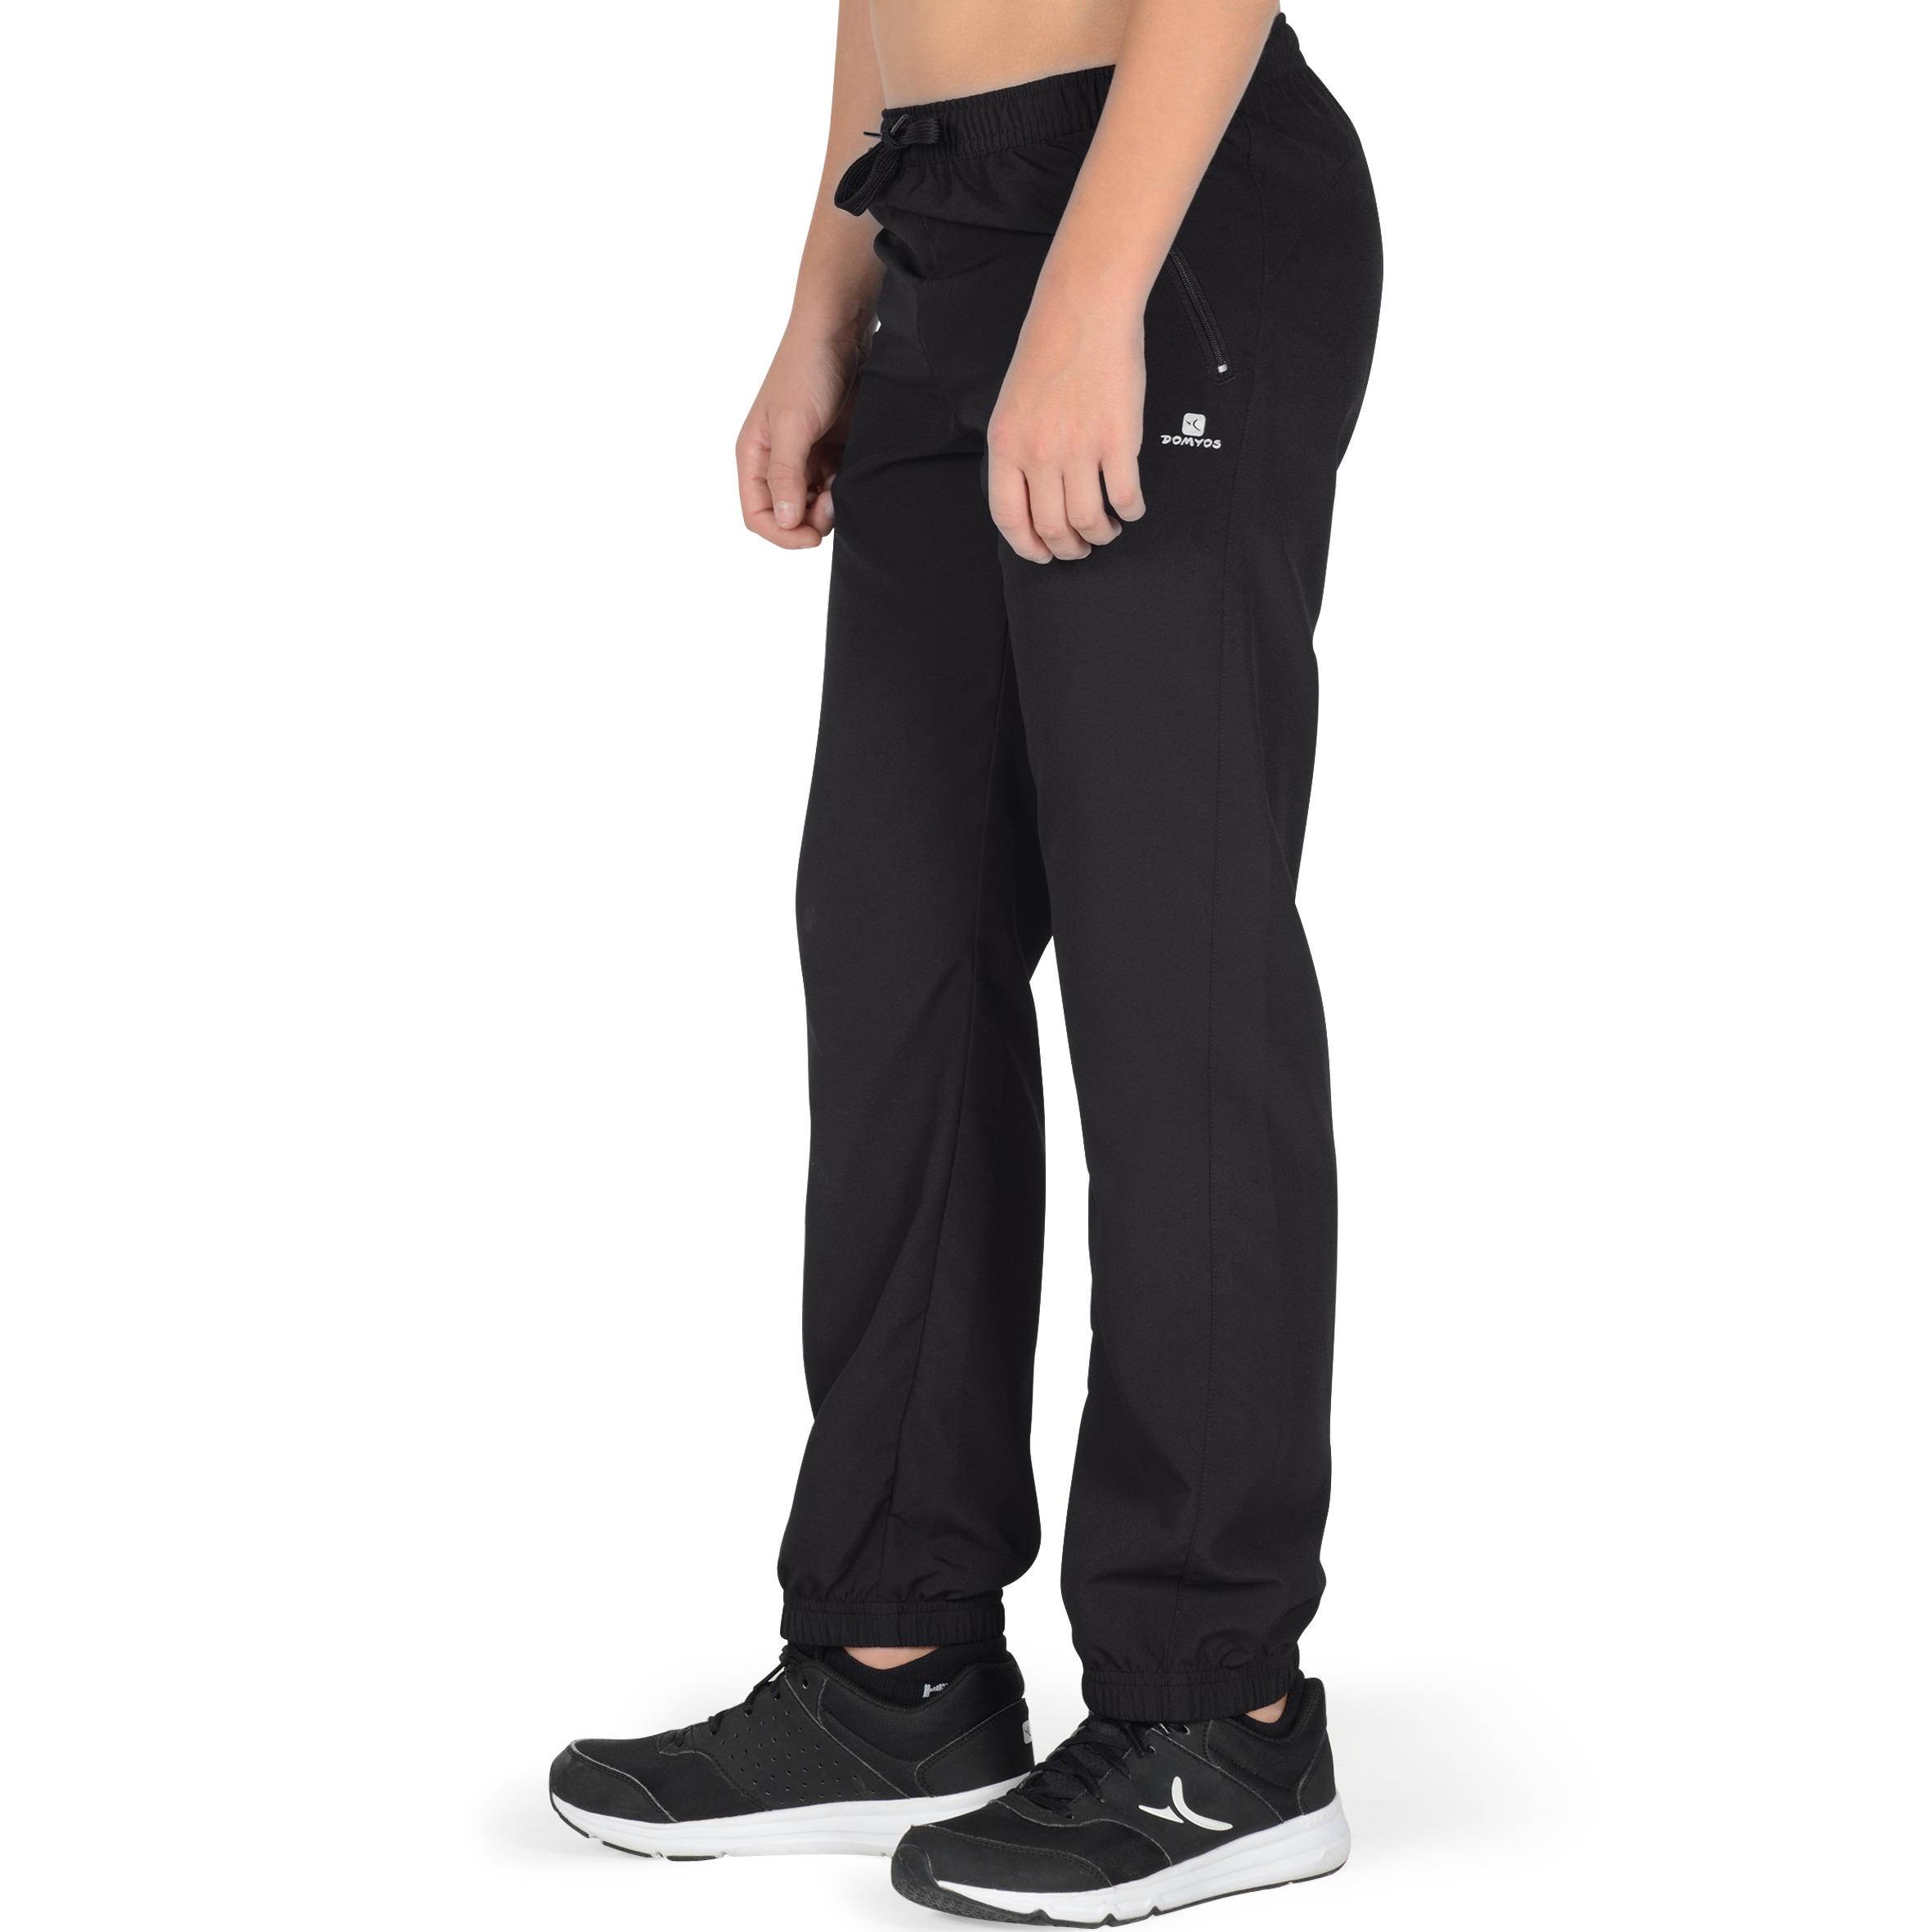 560 Boys' Gym Bottoms With Pockets - Black